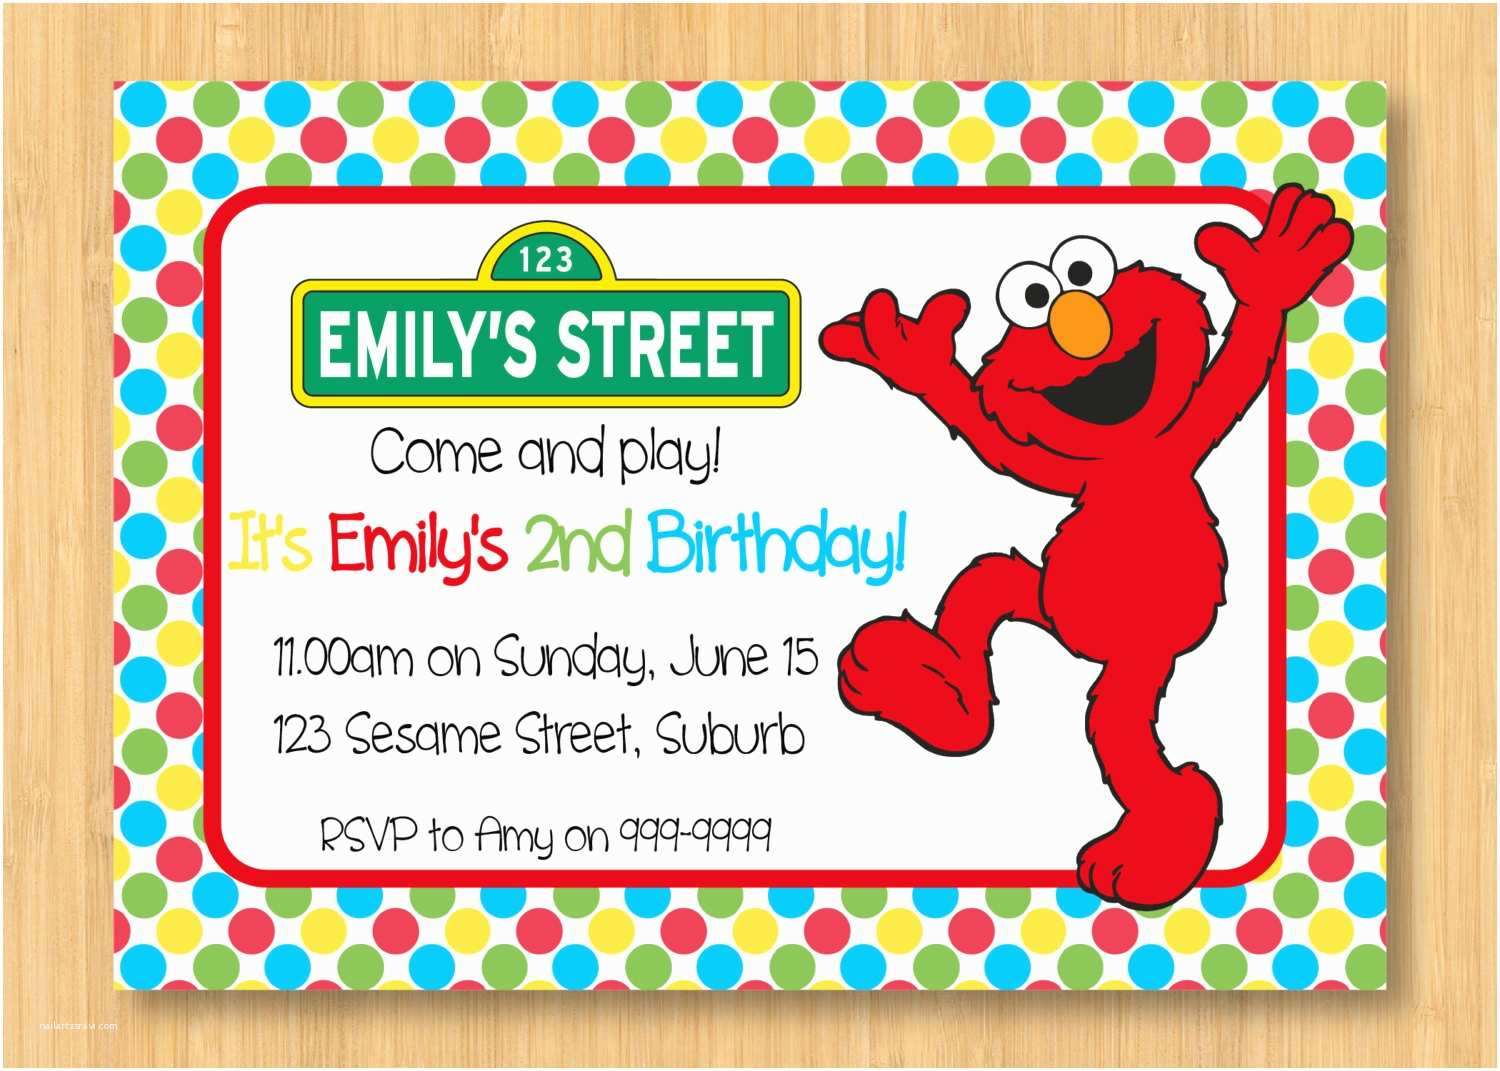 Elmo Birthday Party Invitations How to Create Elmo Birthday Party Invitations Templates